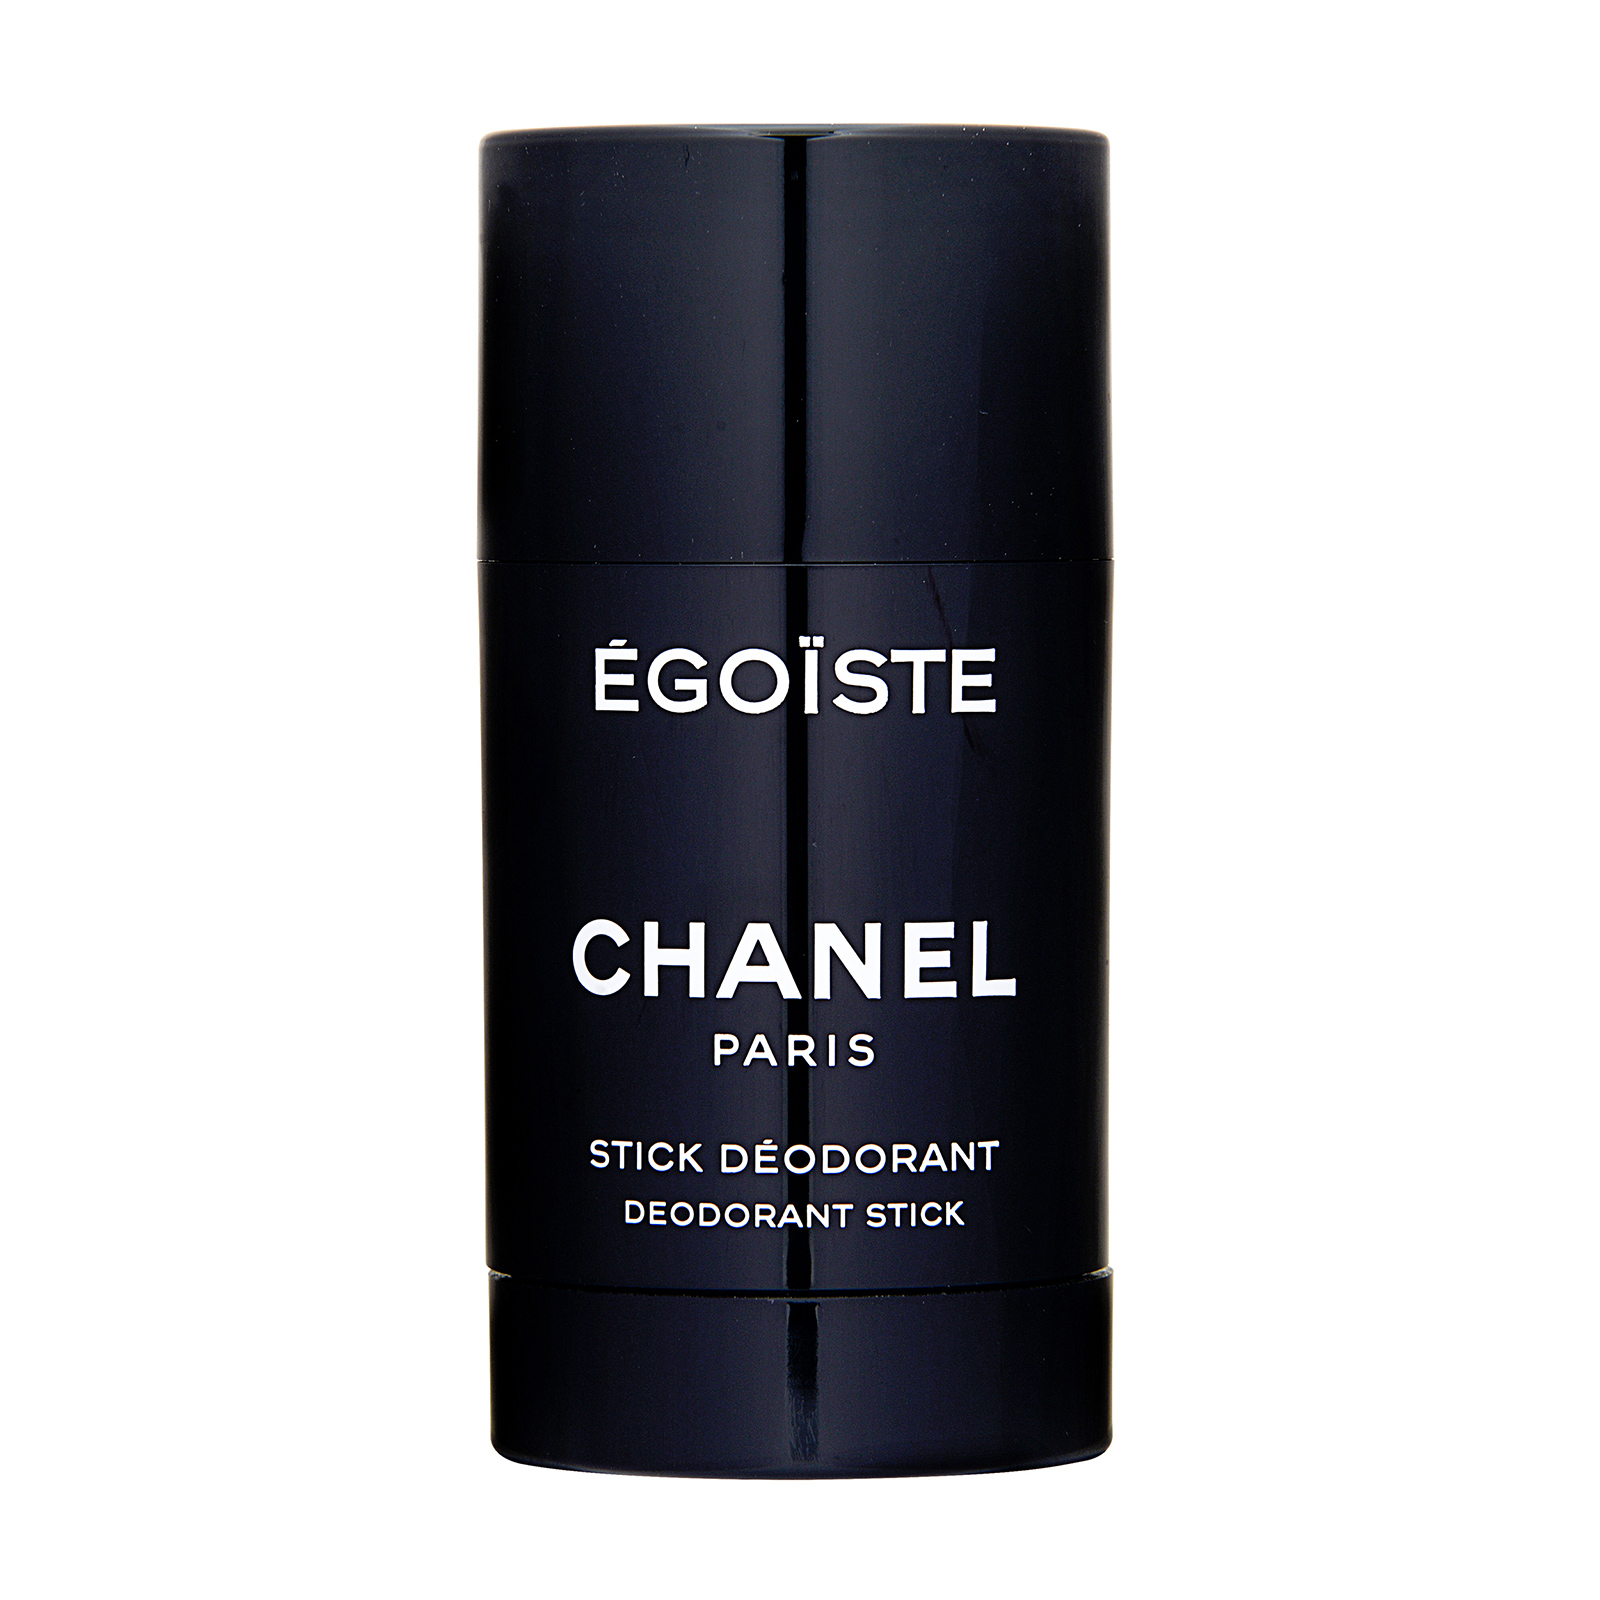 Chanel Egoiste Deodorant Stick 2oz, 75ml  men